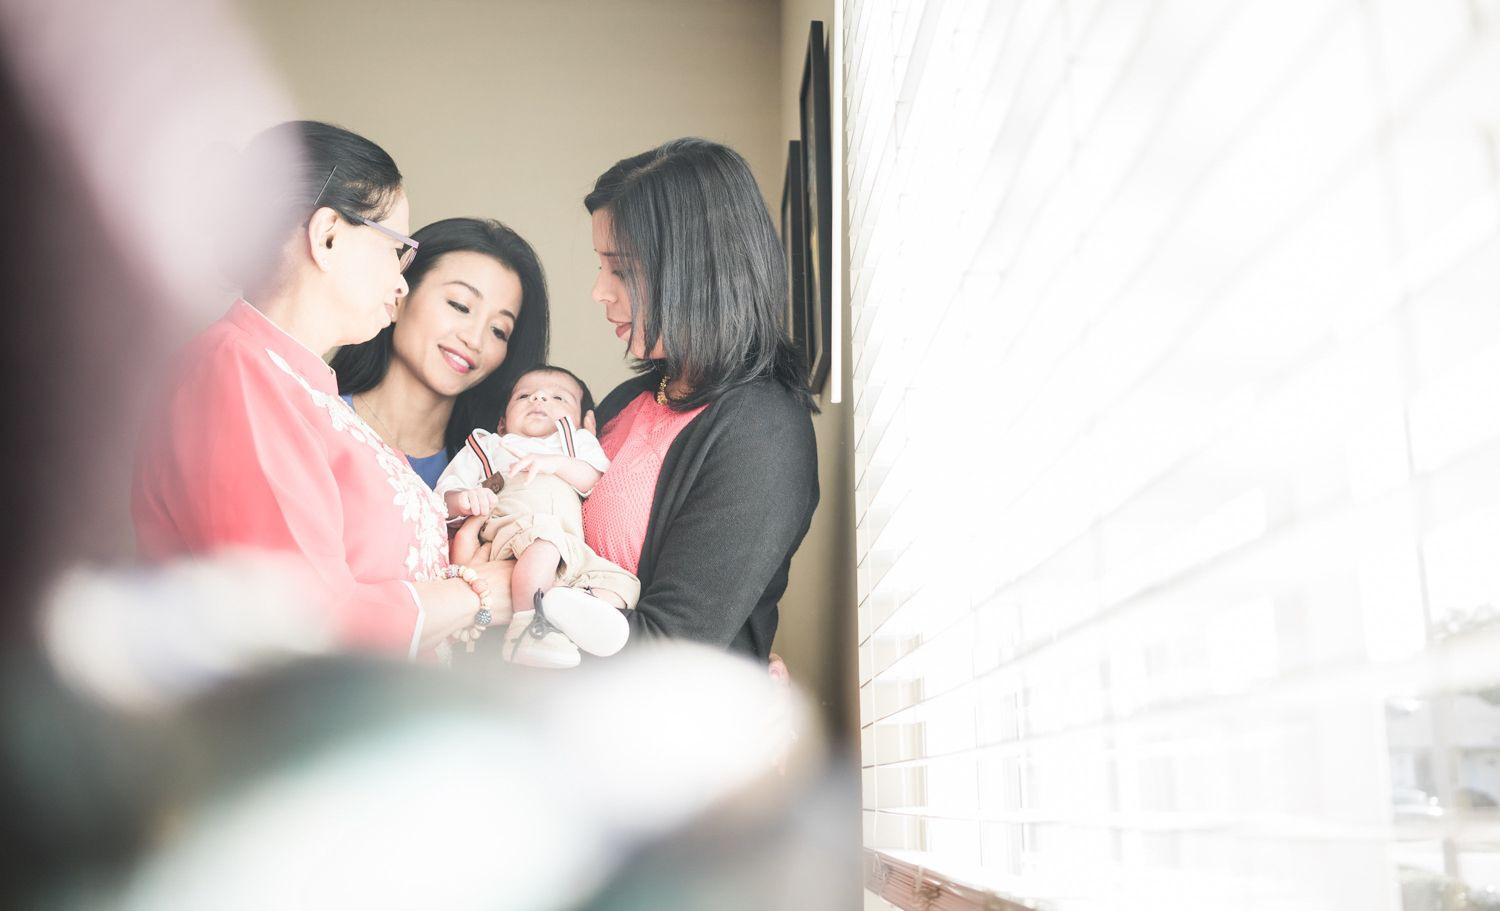 Lifestyle Family Shoot at Home | Family Photo Shoot Ideas ...